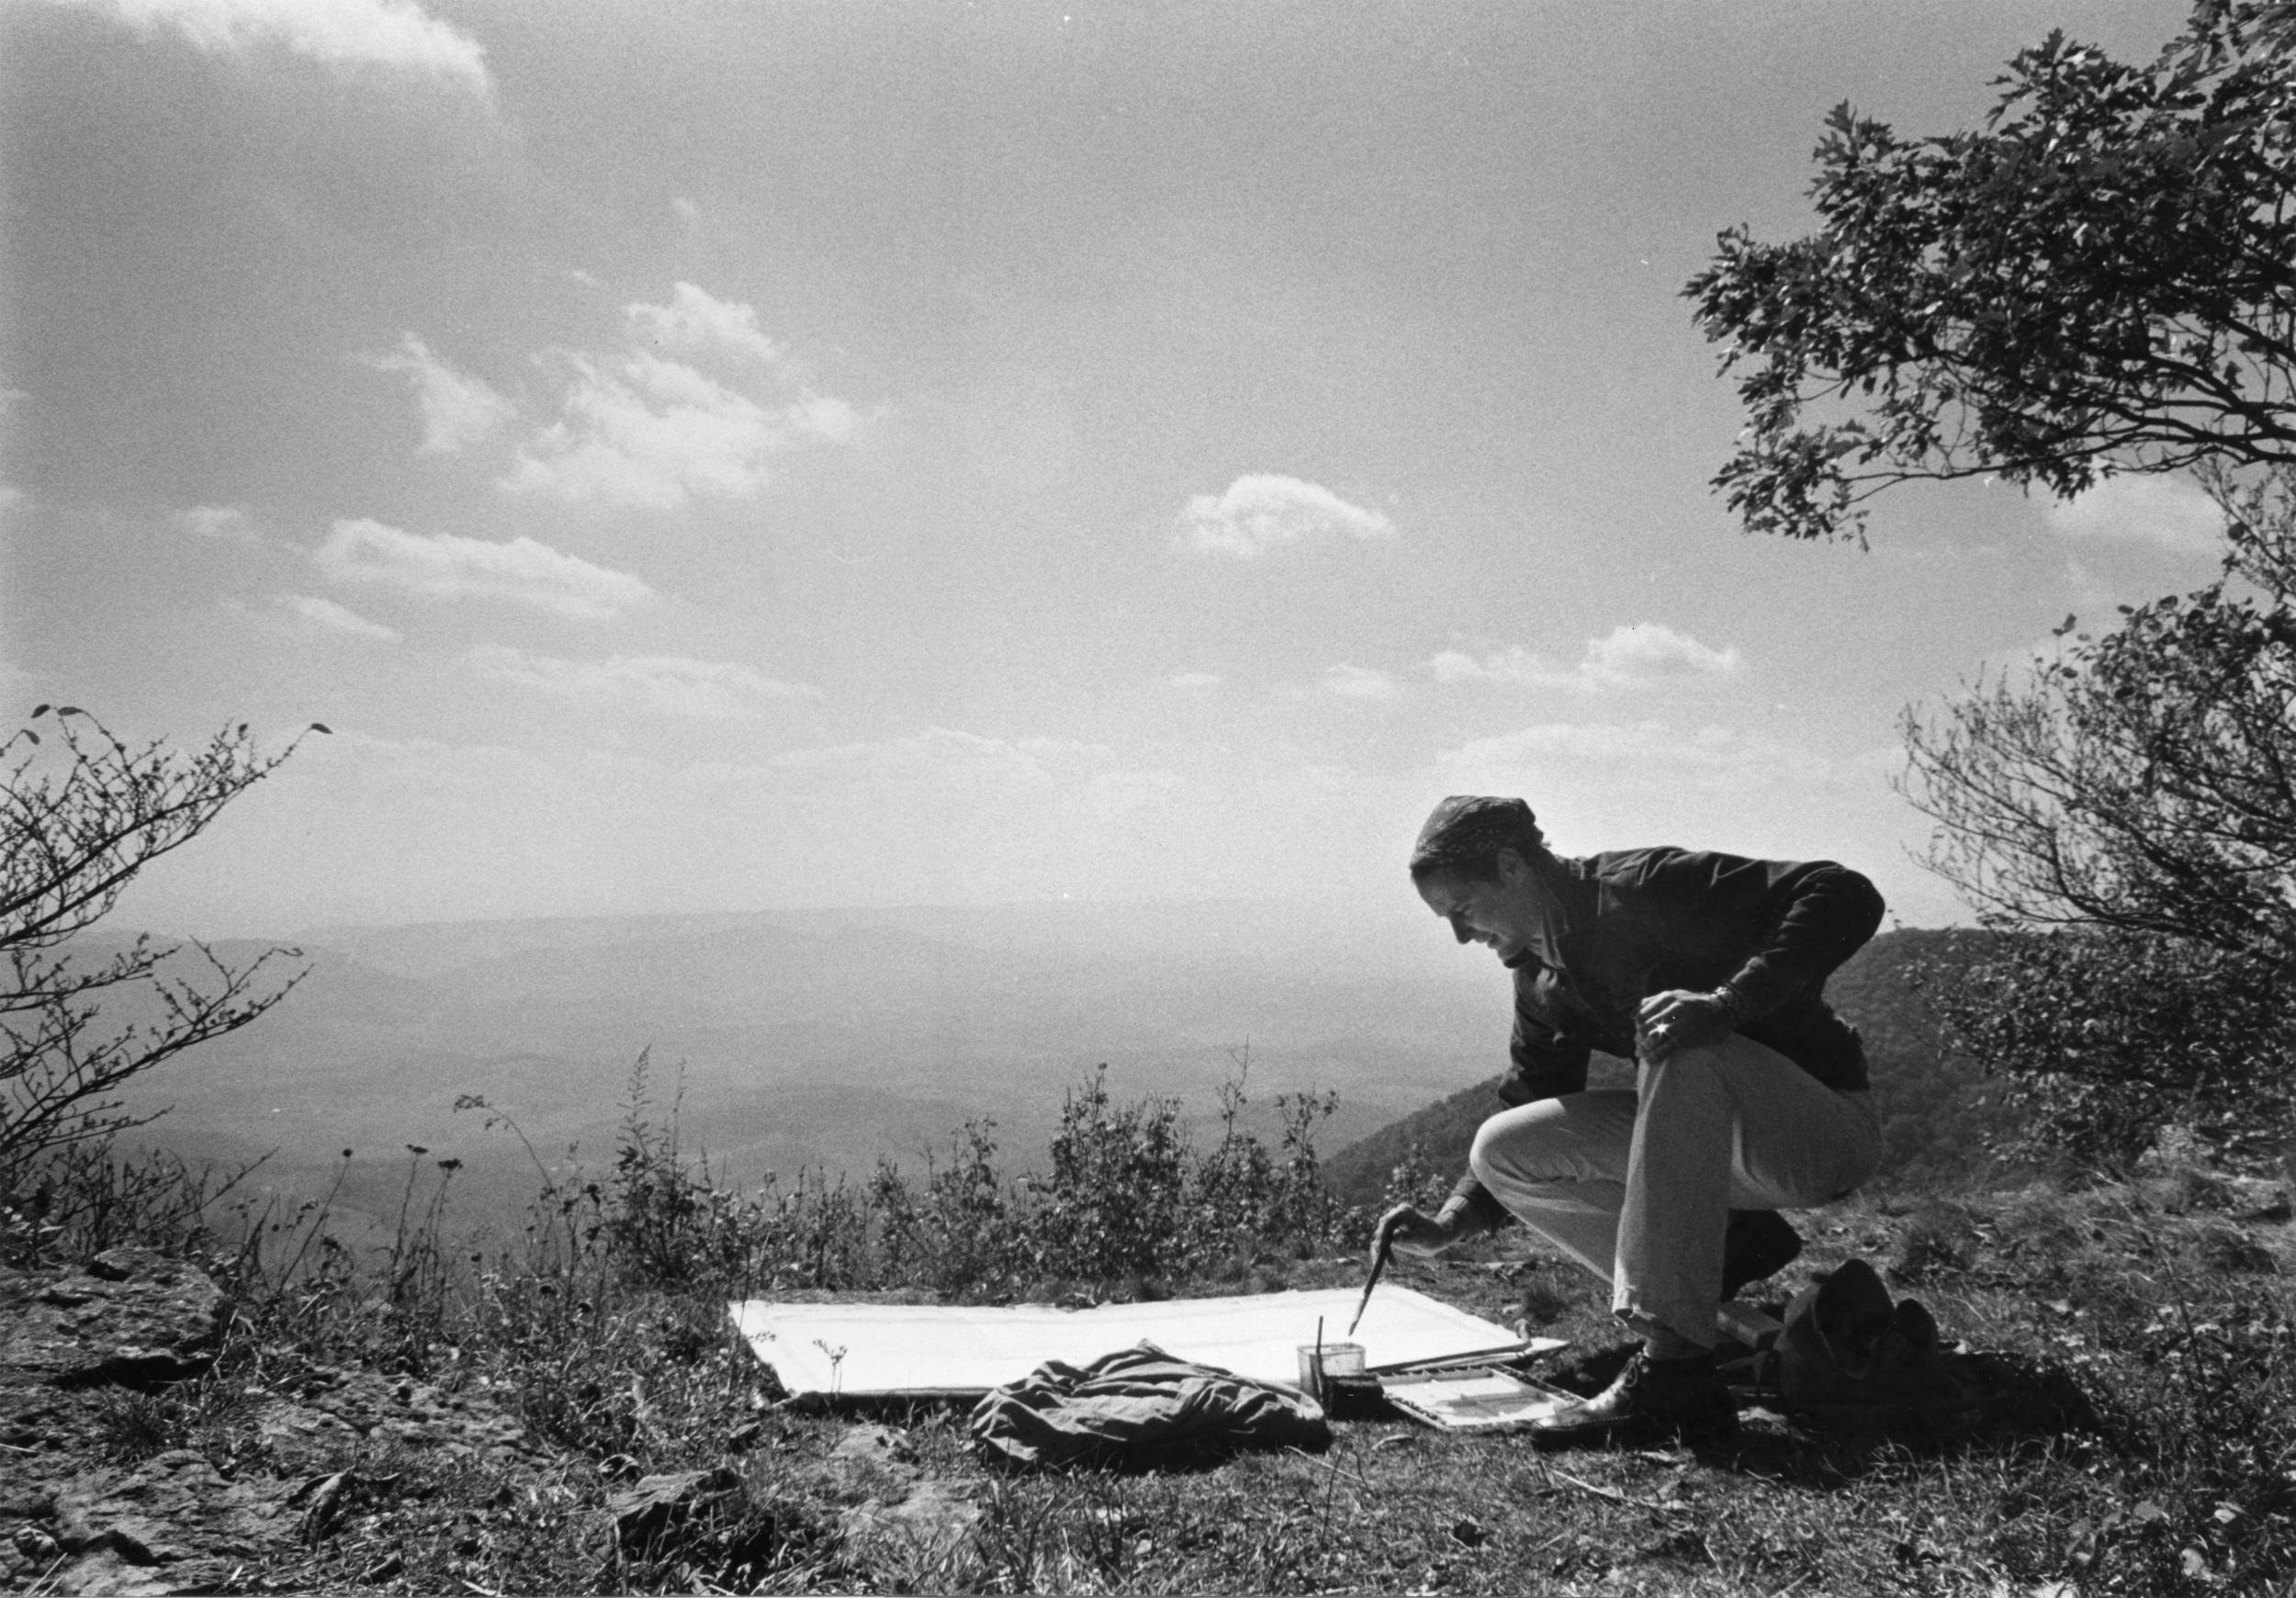 Ray Kass painting the view from an overlook at Mountain Lake Hotel PHOTOGRAPH: SUSAN SHATTER, 1976